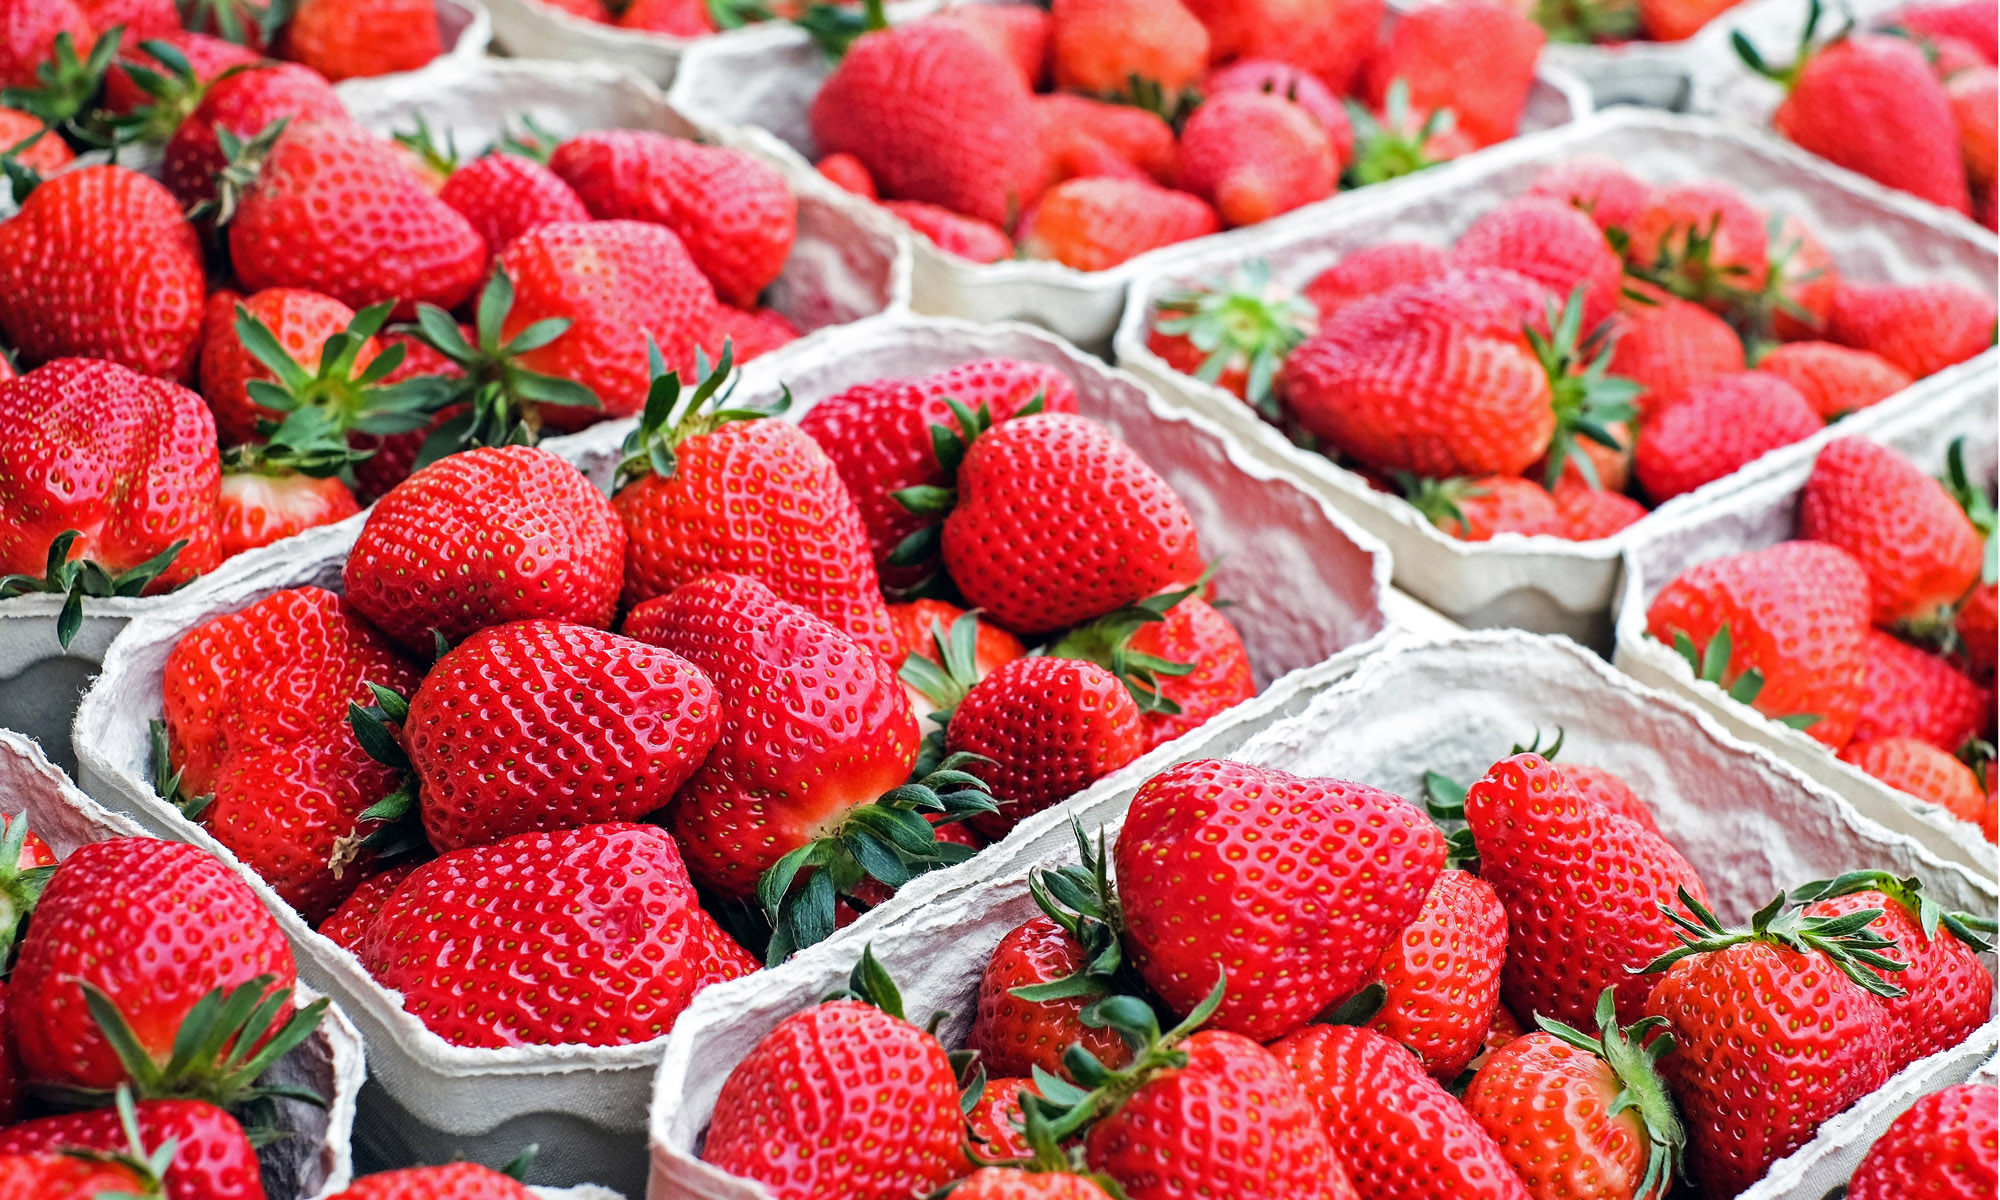 Strawberries Show Promise - As a Potent Weapon against Oral Cancer